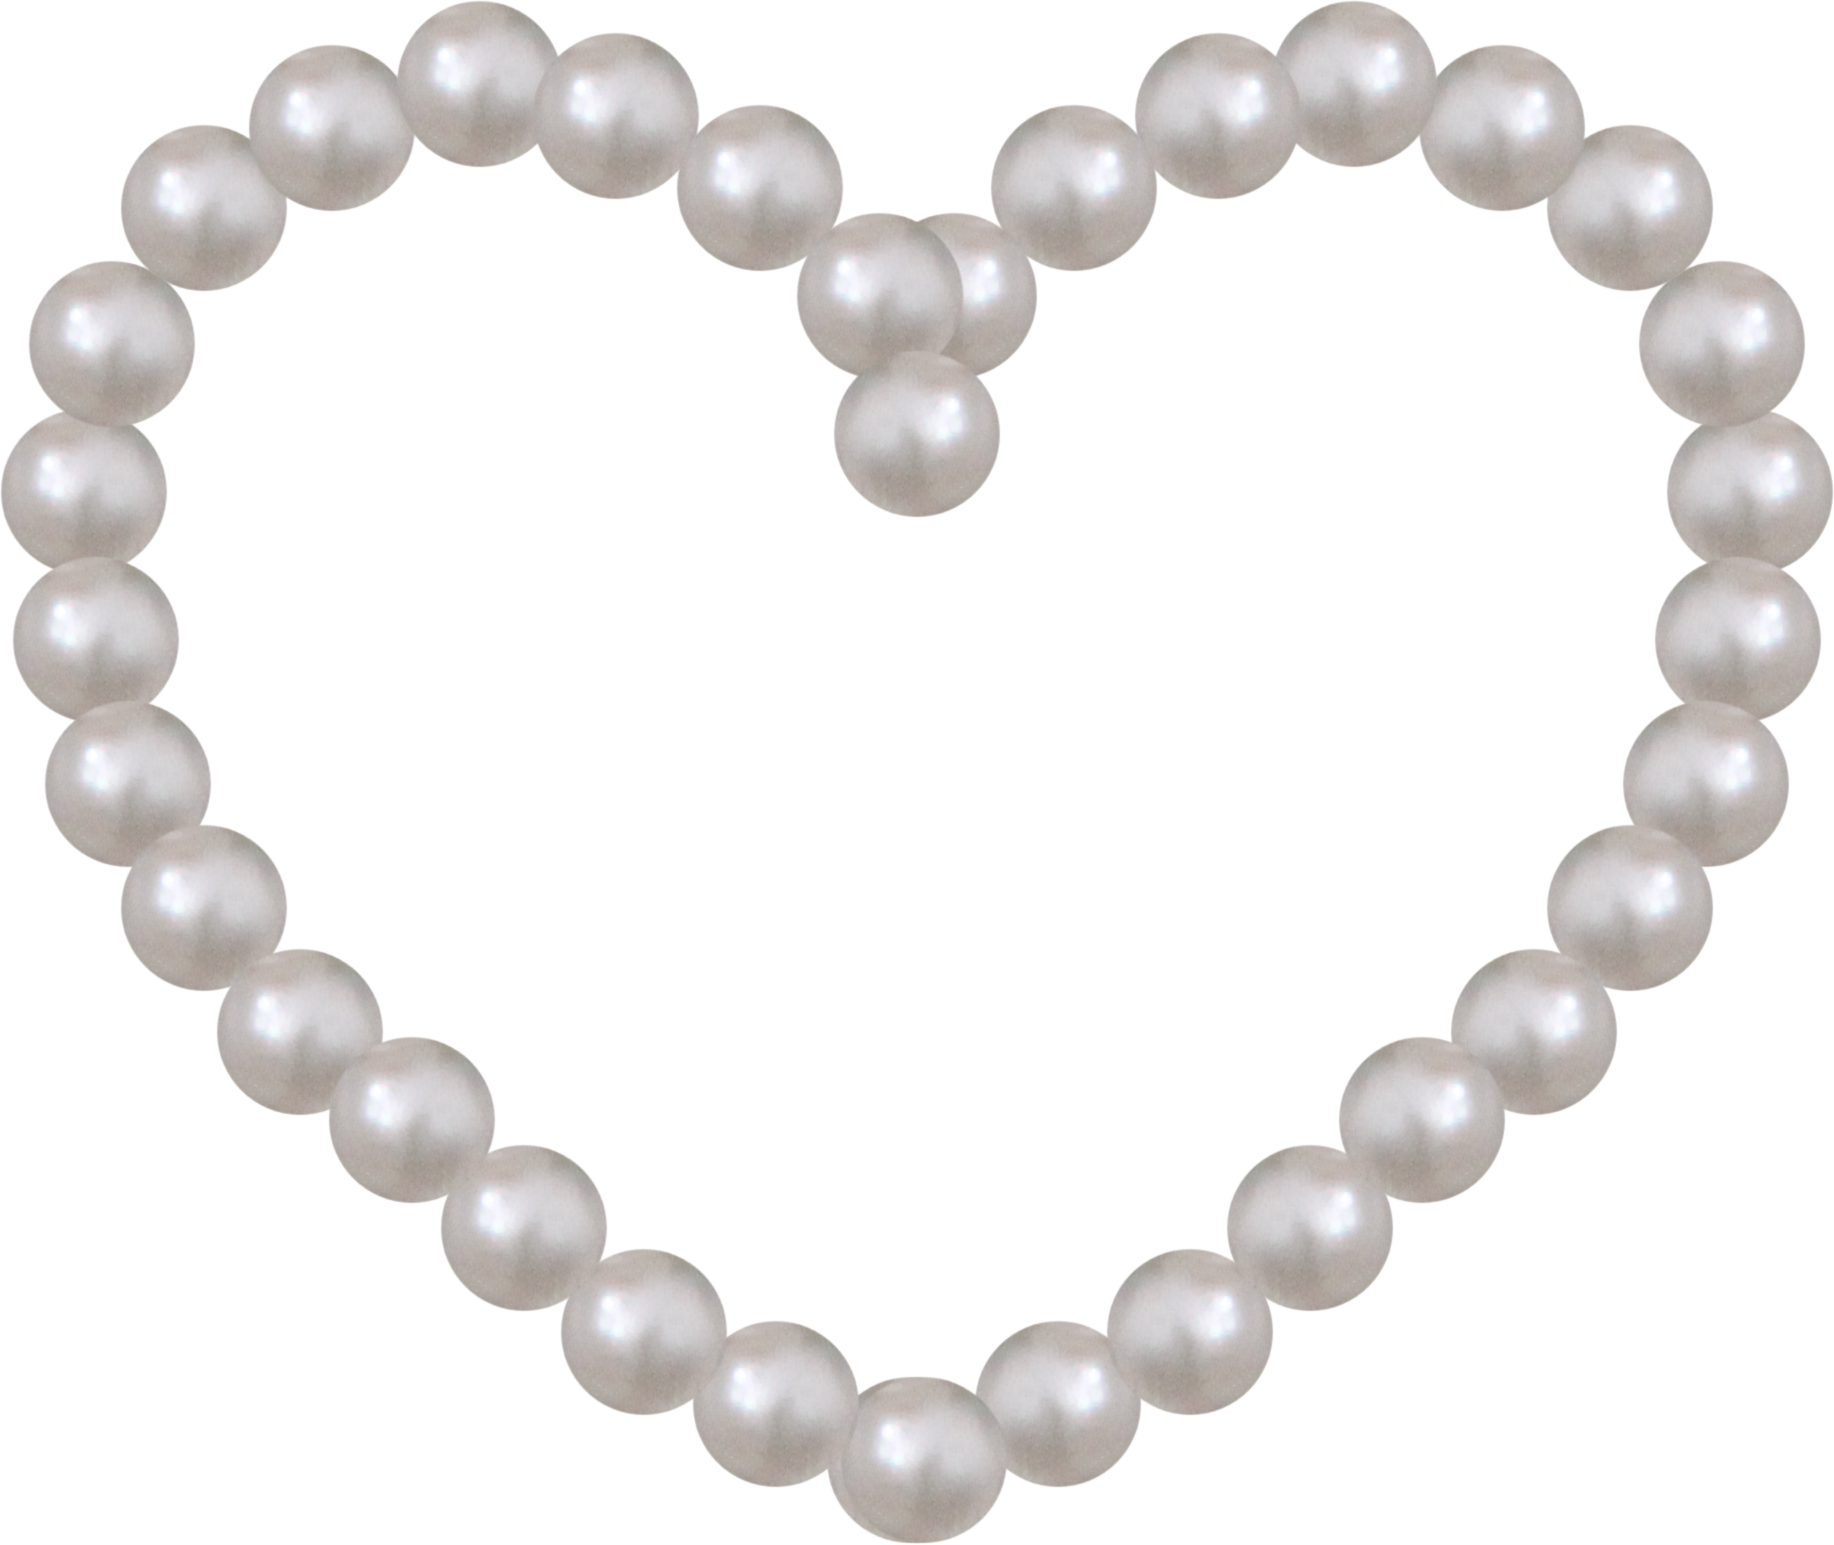 Bead earring jewelry pictures. Necklace clipart small black pearl